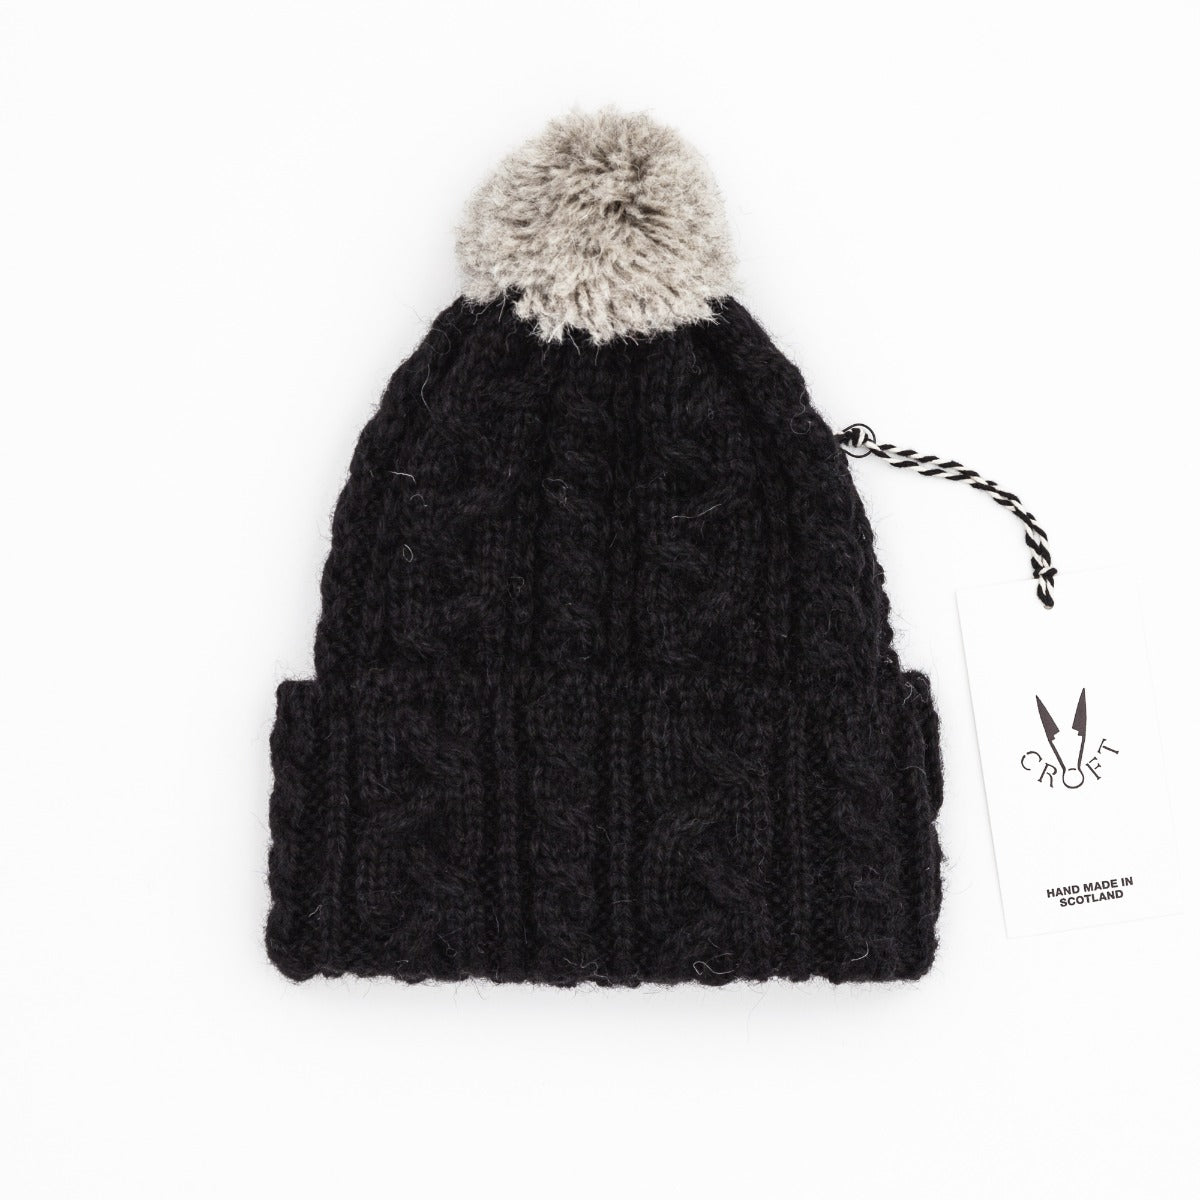 Croft Cable Knit Hat - Alpaca / British Wool Black